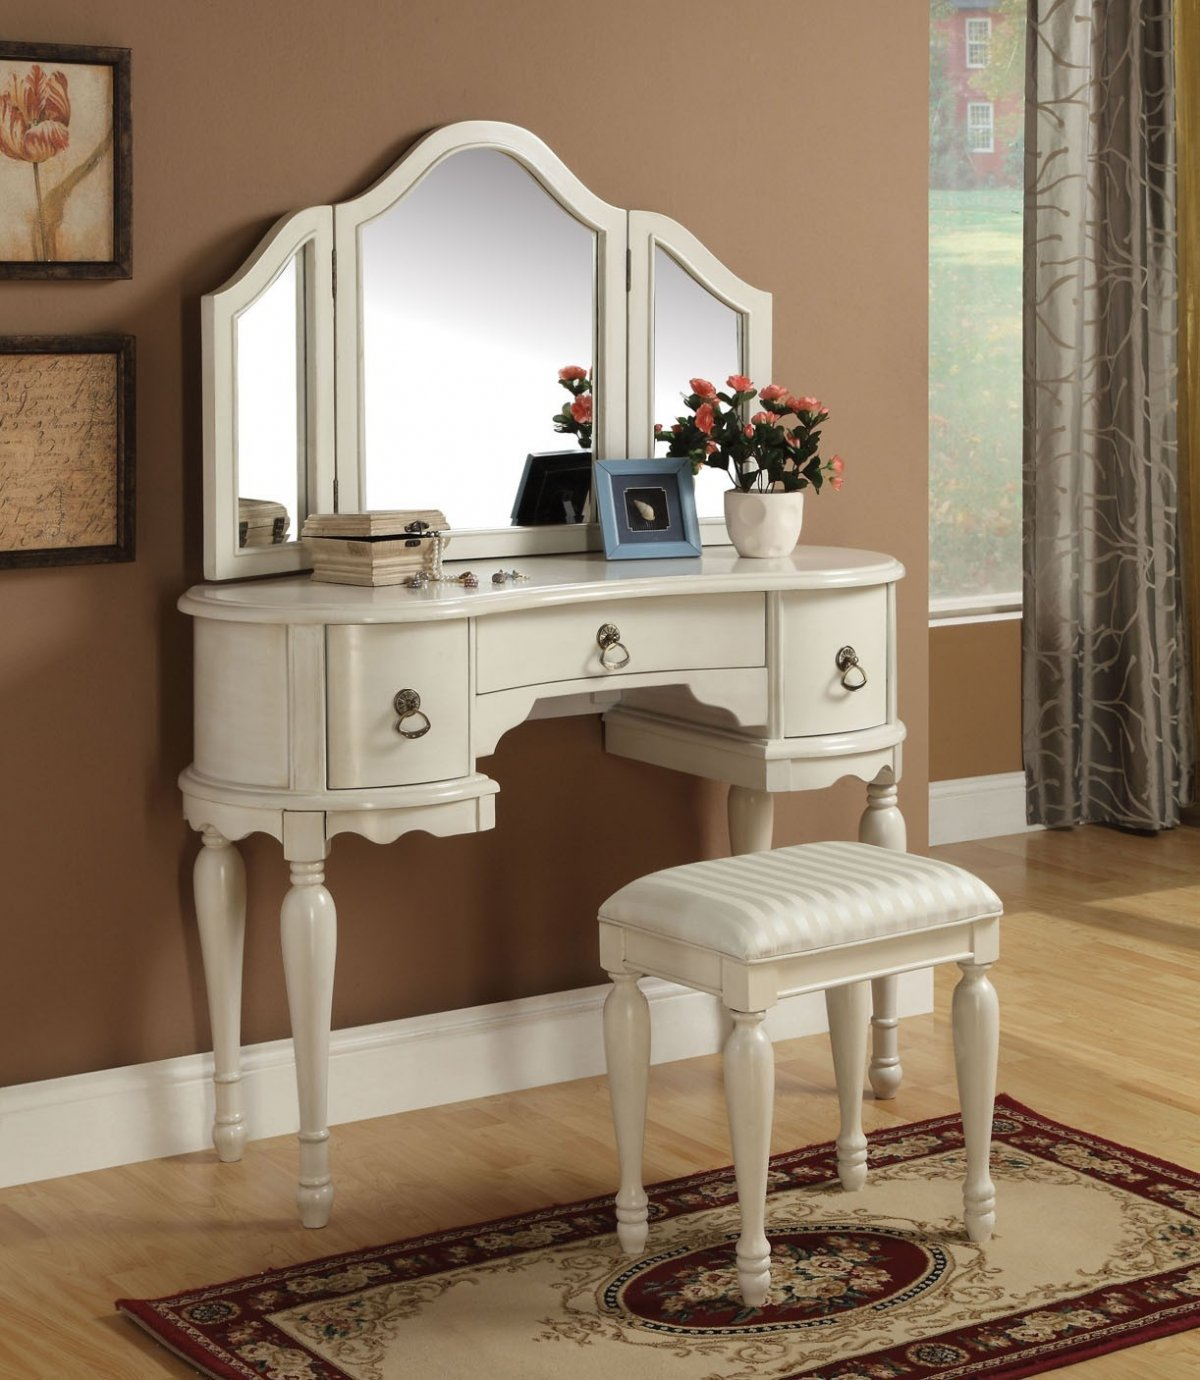 Mirrored Vanity Set | Mirrored Makeup Table | Vanity Mirror Dresser Set